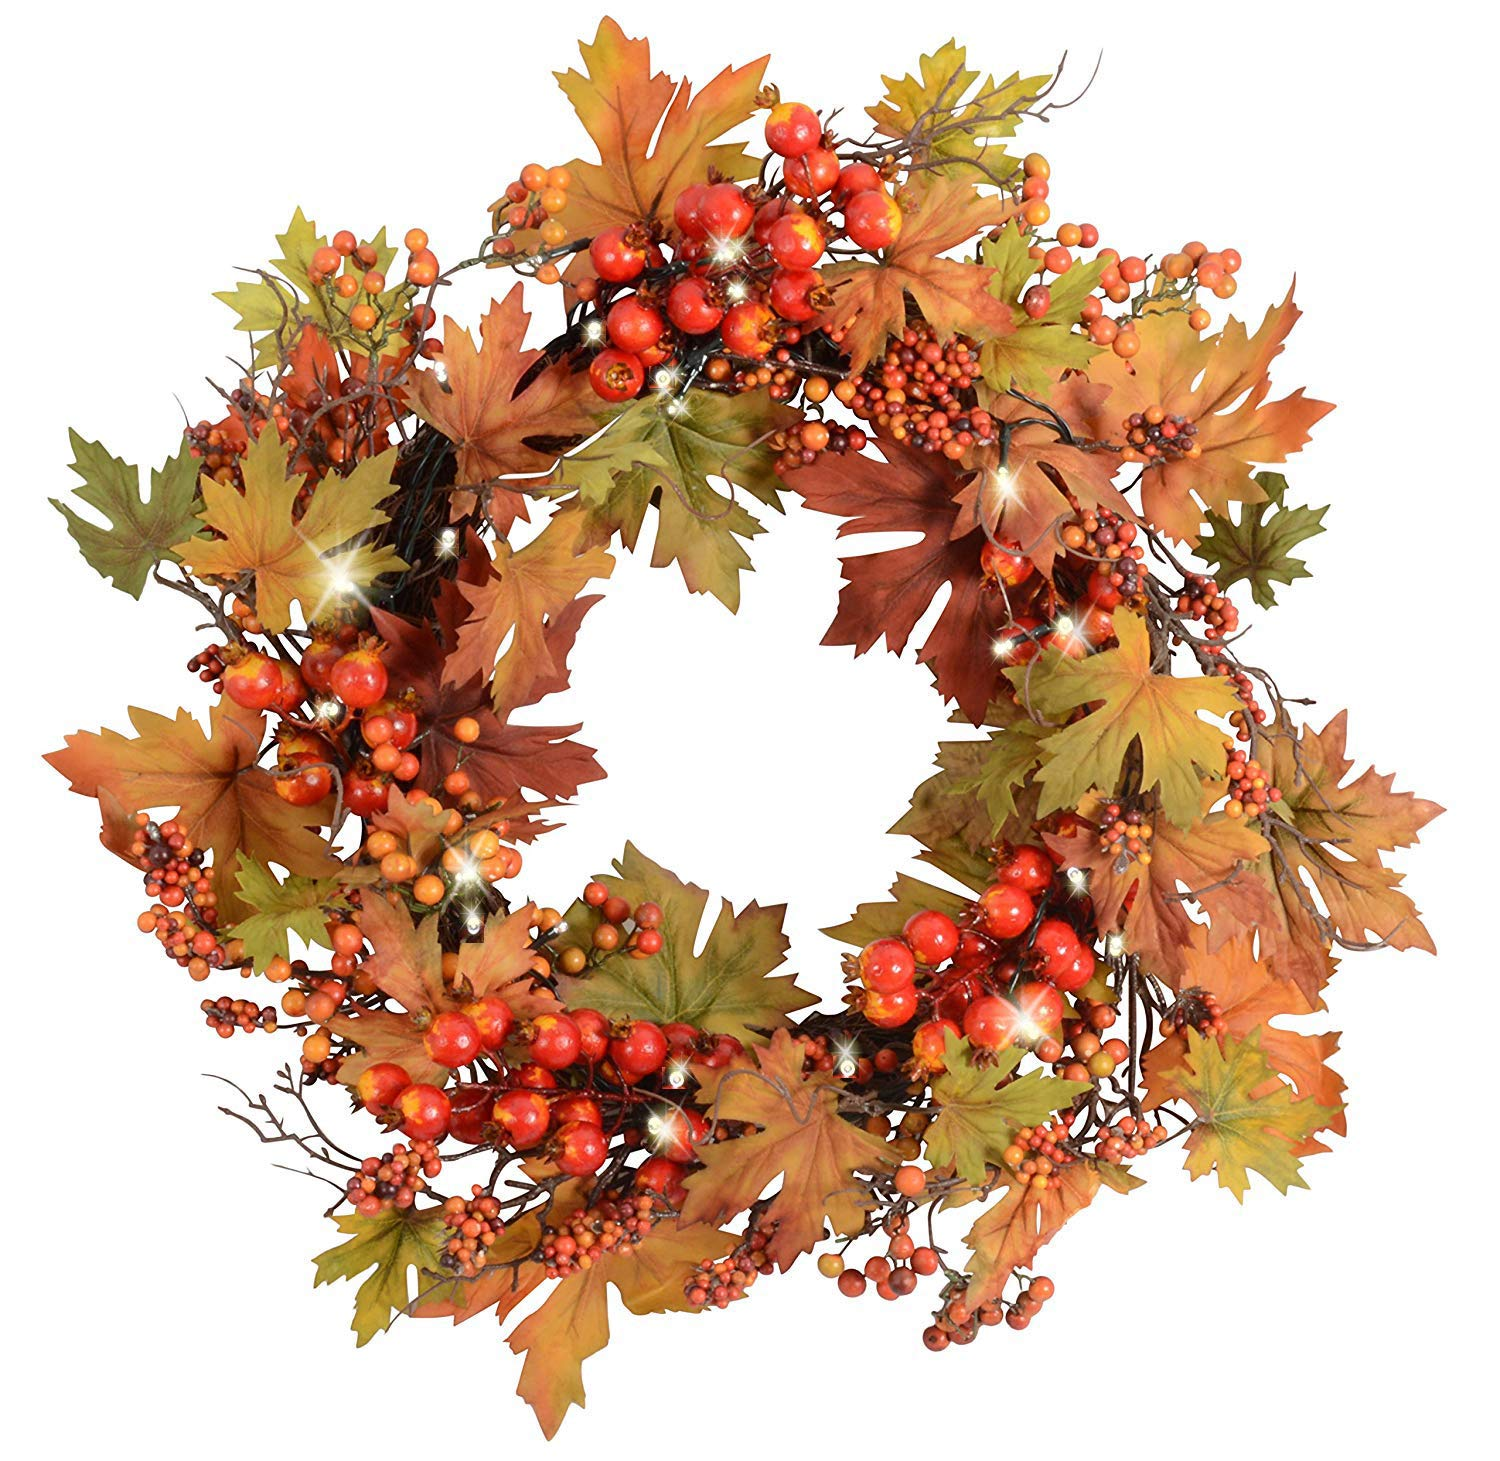 Ten Waterloo 24 Inch Pre-Lit LED Fall and Thanksgiving Wreath with Lights and Timer - Battery Operated - Artificial Maple Leaf Wreath with Berries on Twig Base